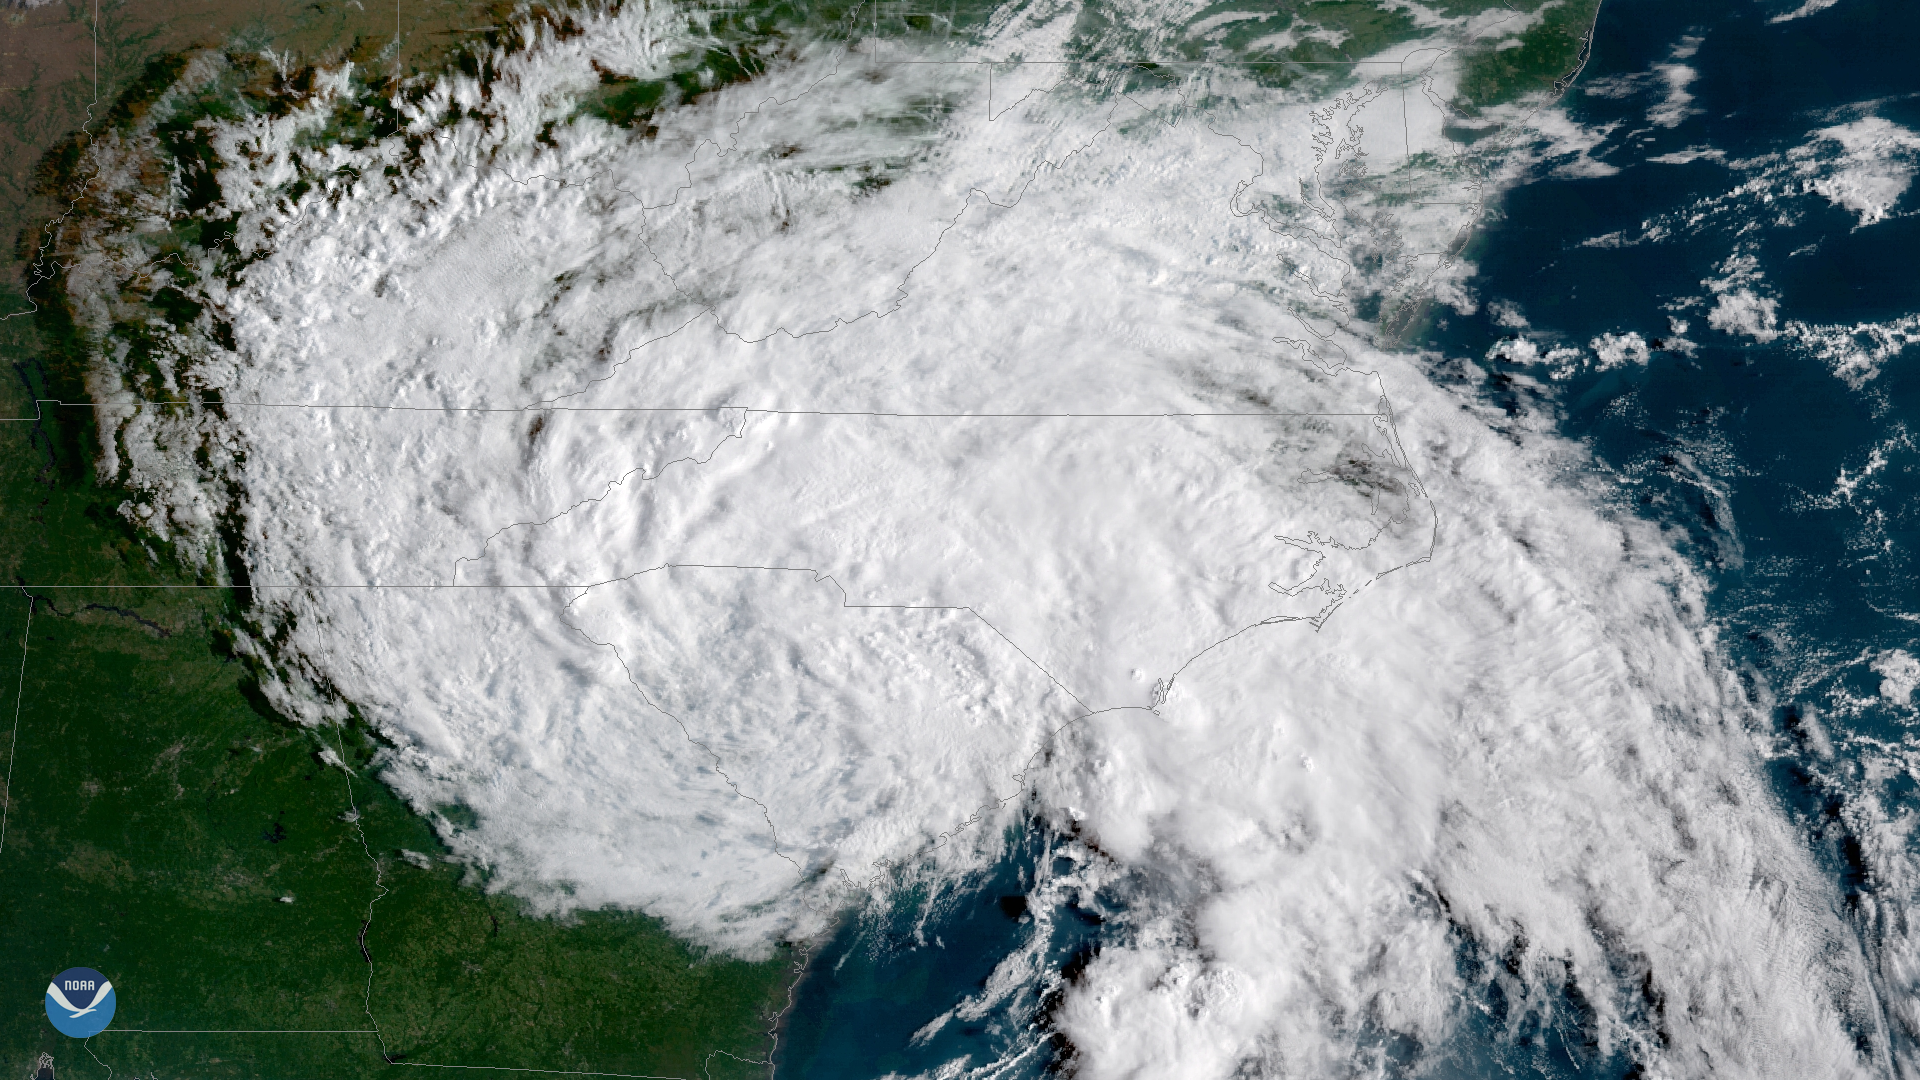 Satellite image of Hurricane Florence. NOAA / noaa.gov